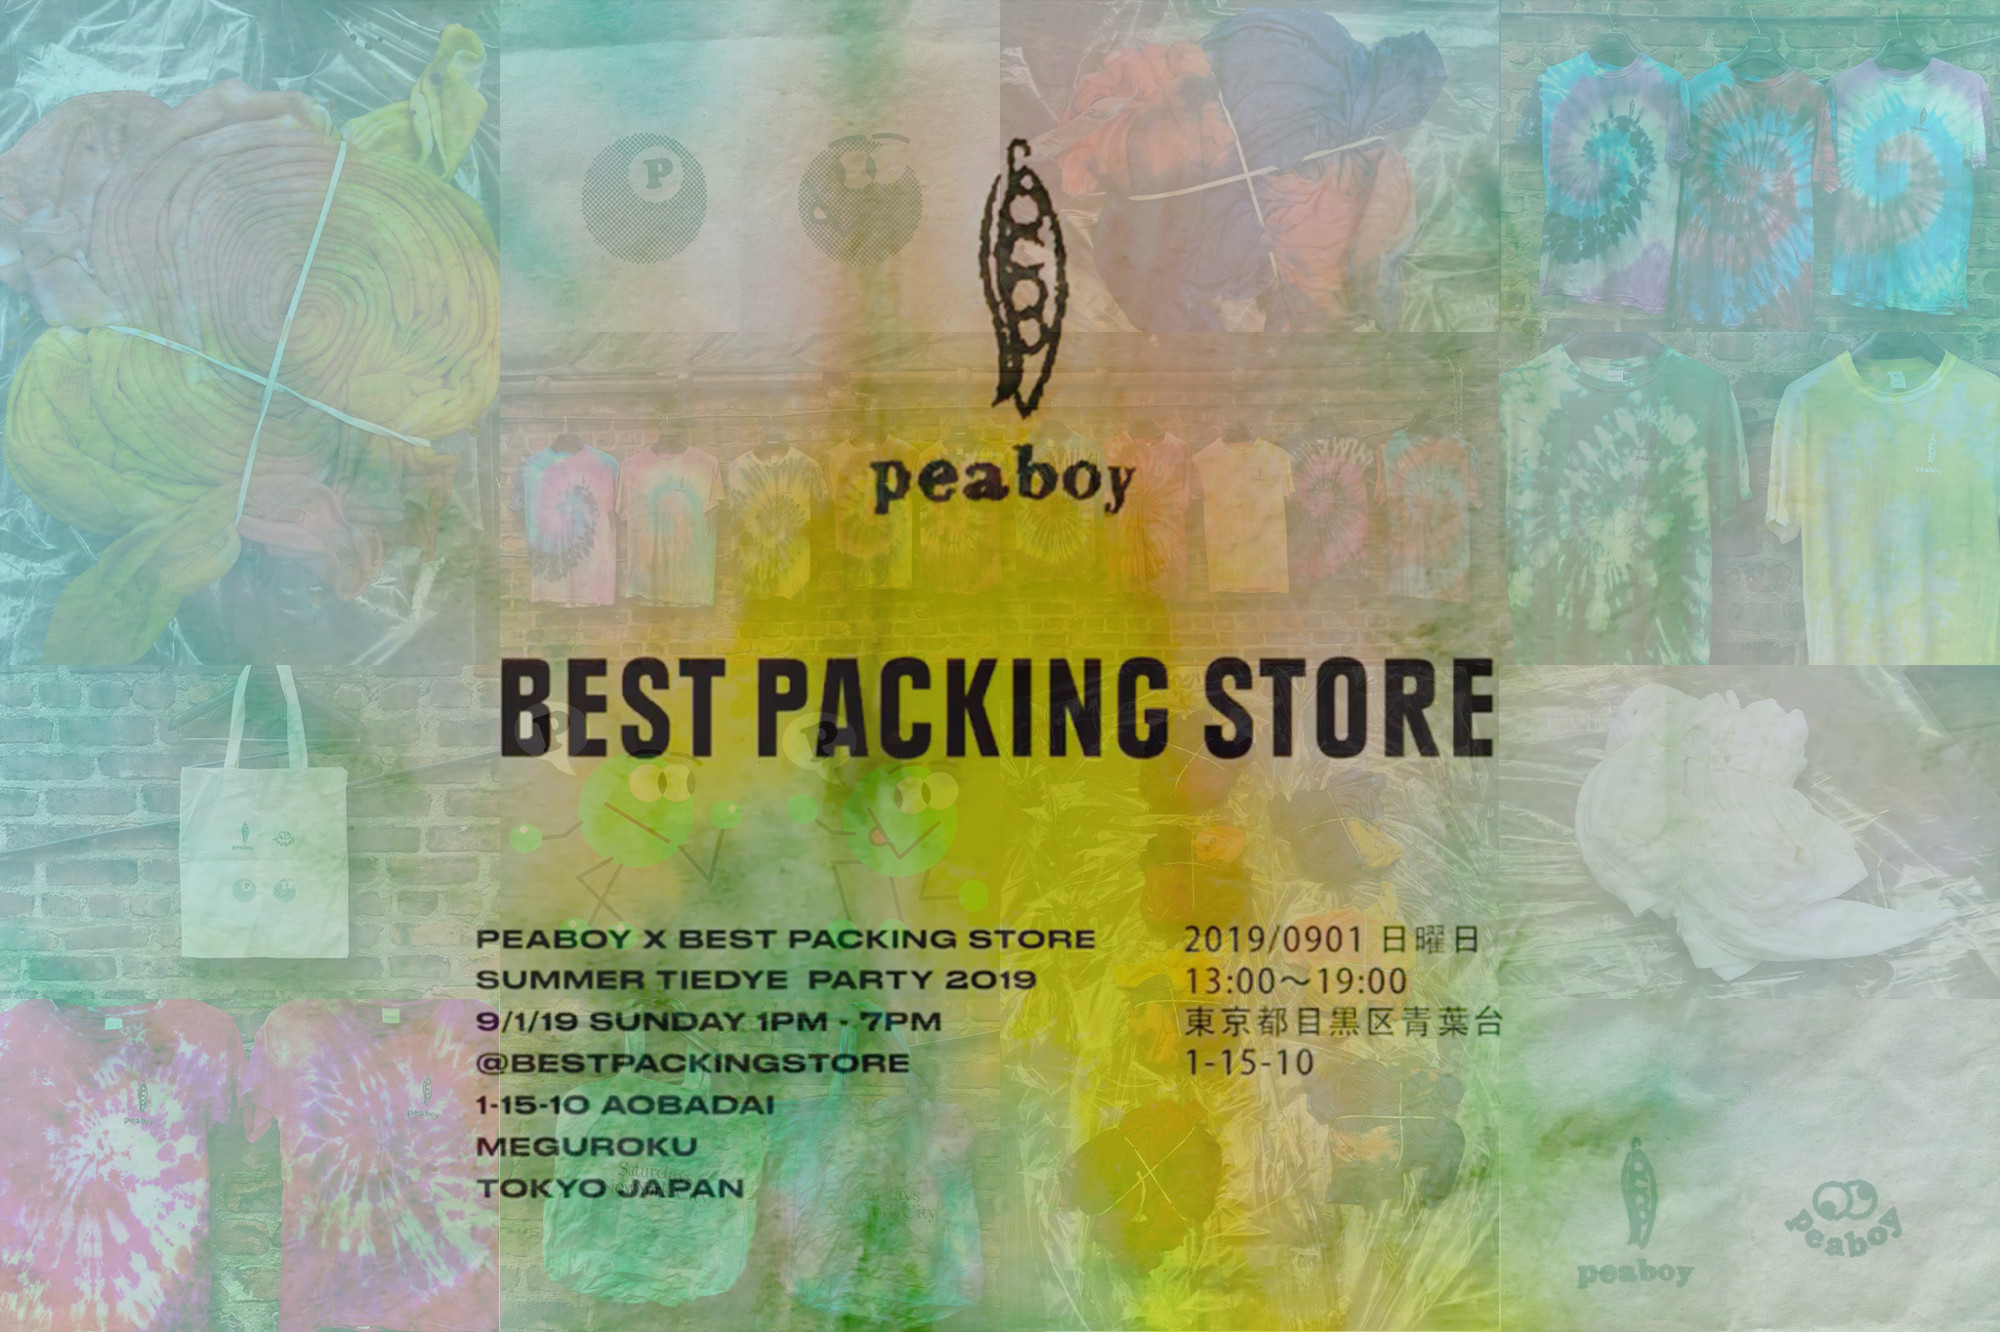 Peaboy × BEST PACKING STORE Workshop